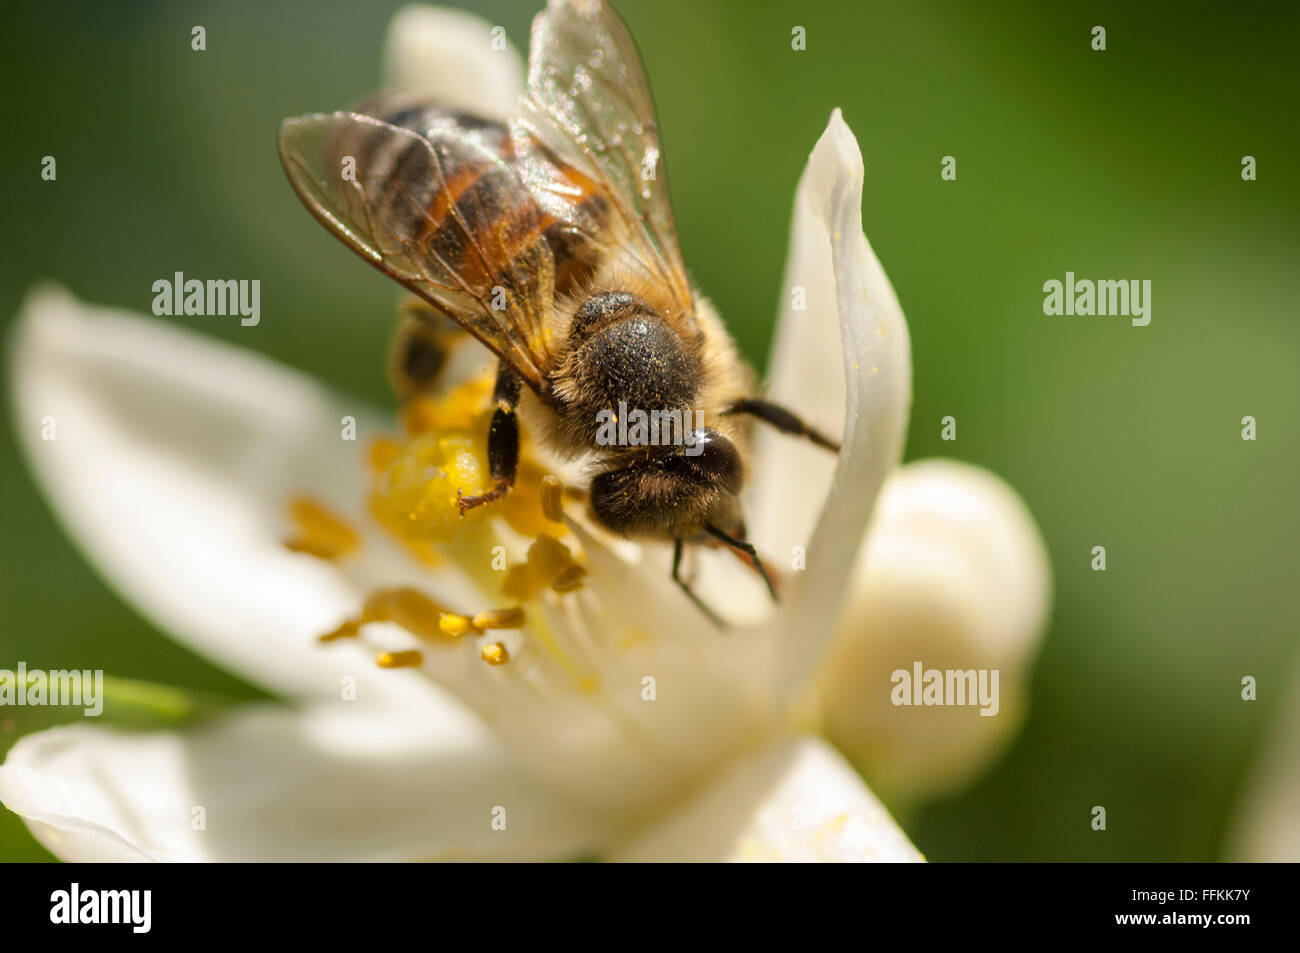 Honey Bee pollinating citrus blossom - Stock Image